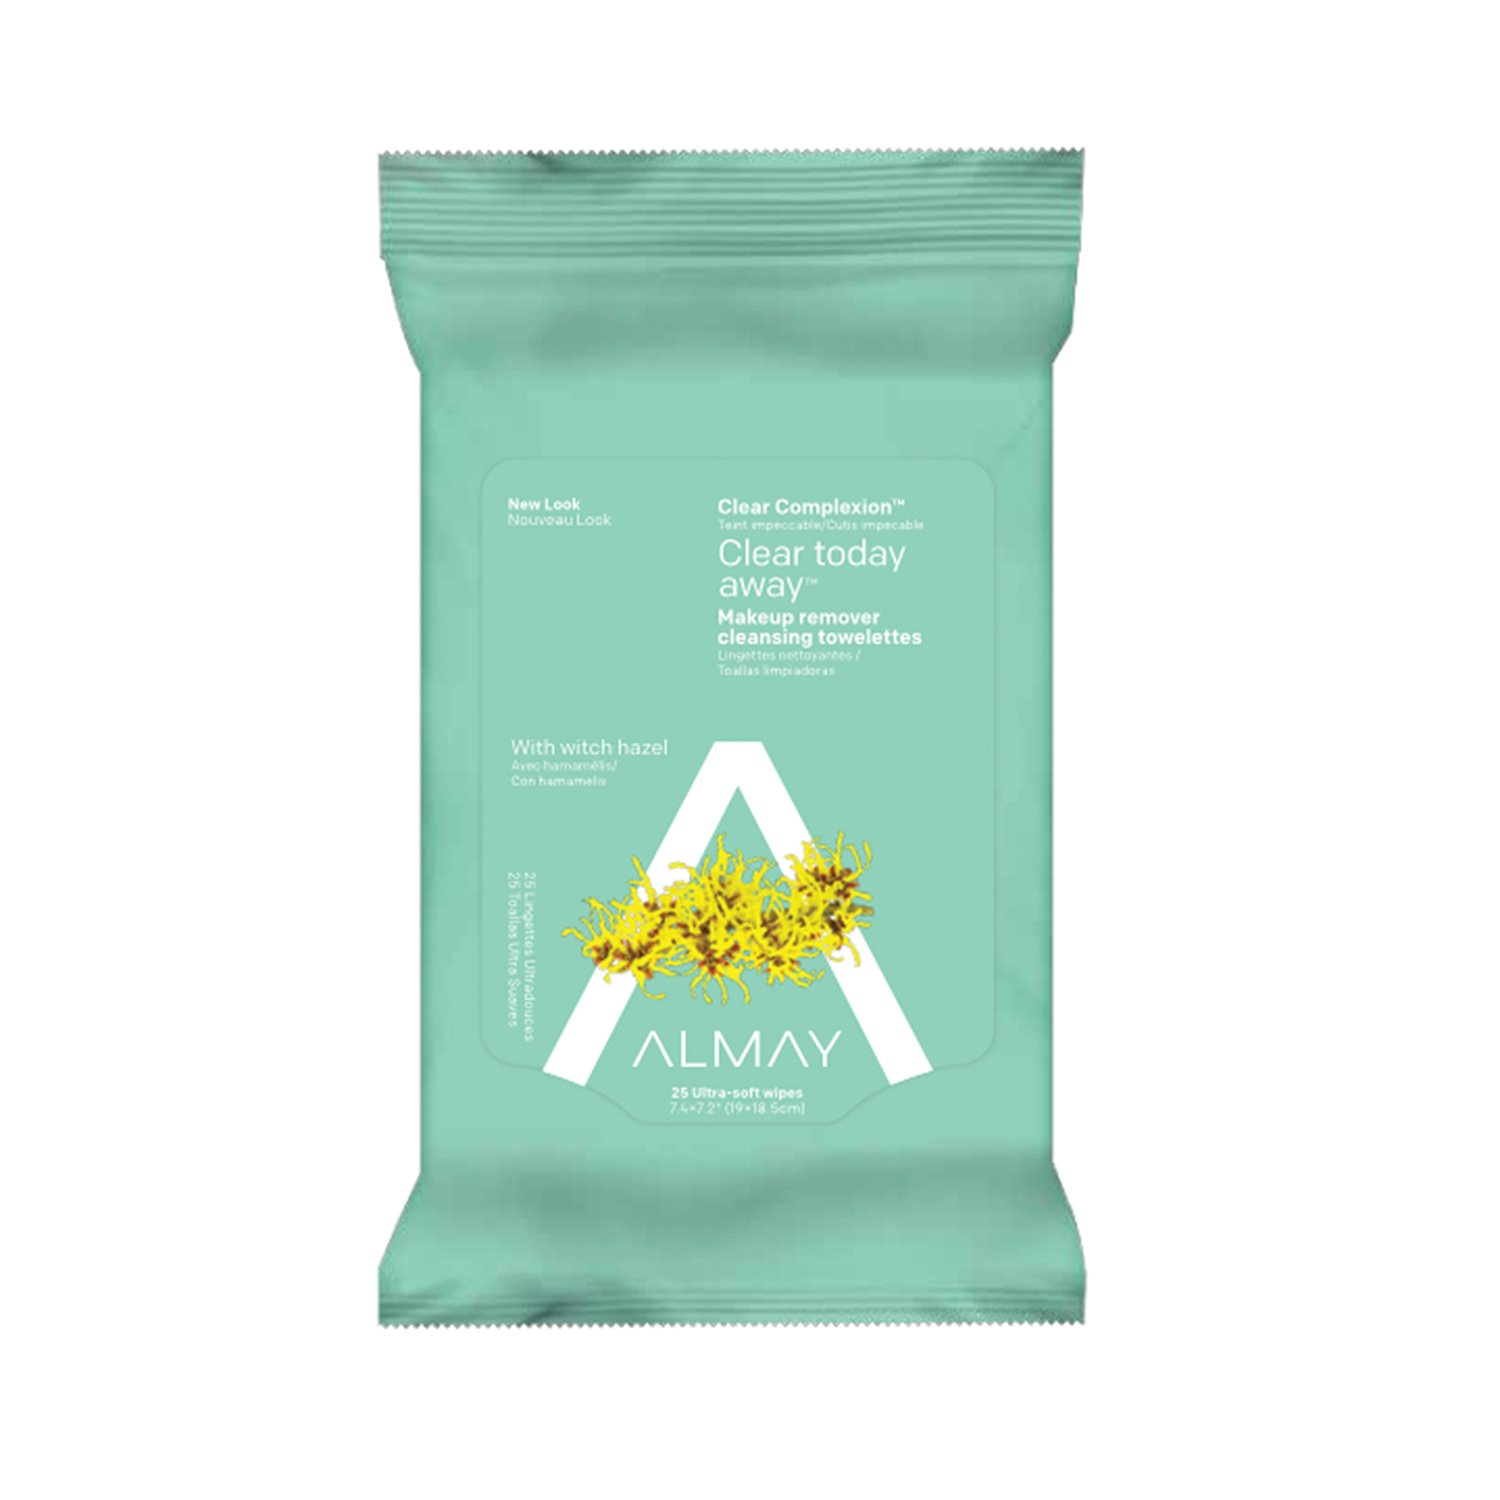 Amazon.com: Almay Night Soothing Makeup Remover Cleansing Towelettes With Vanilla And Chamomille: Beauty